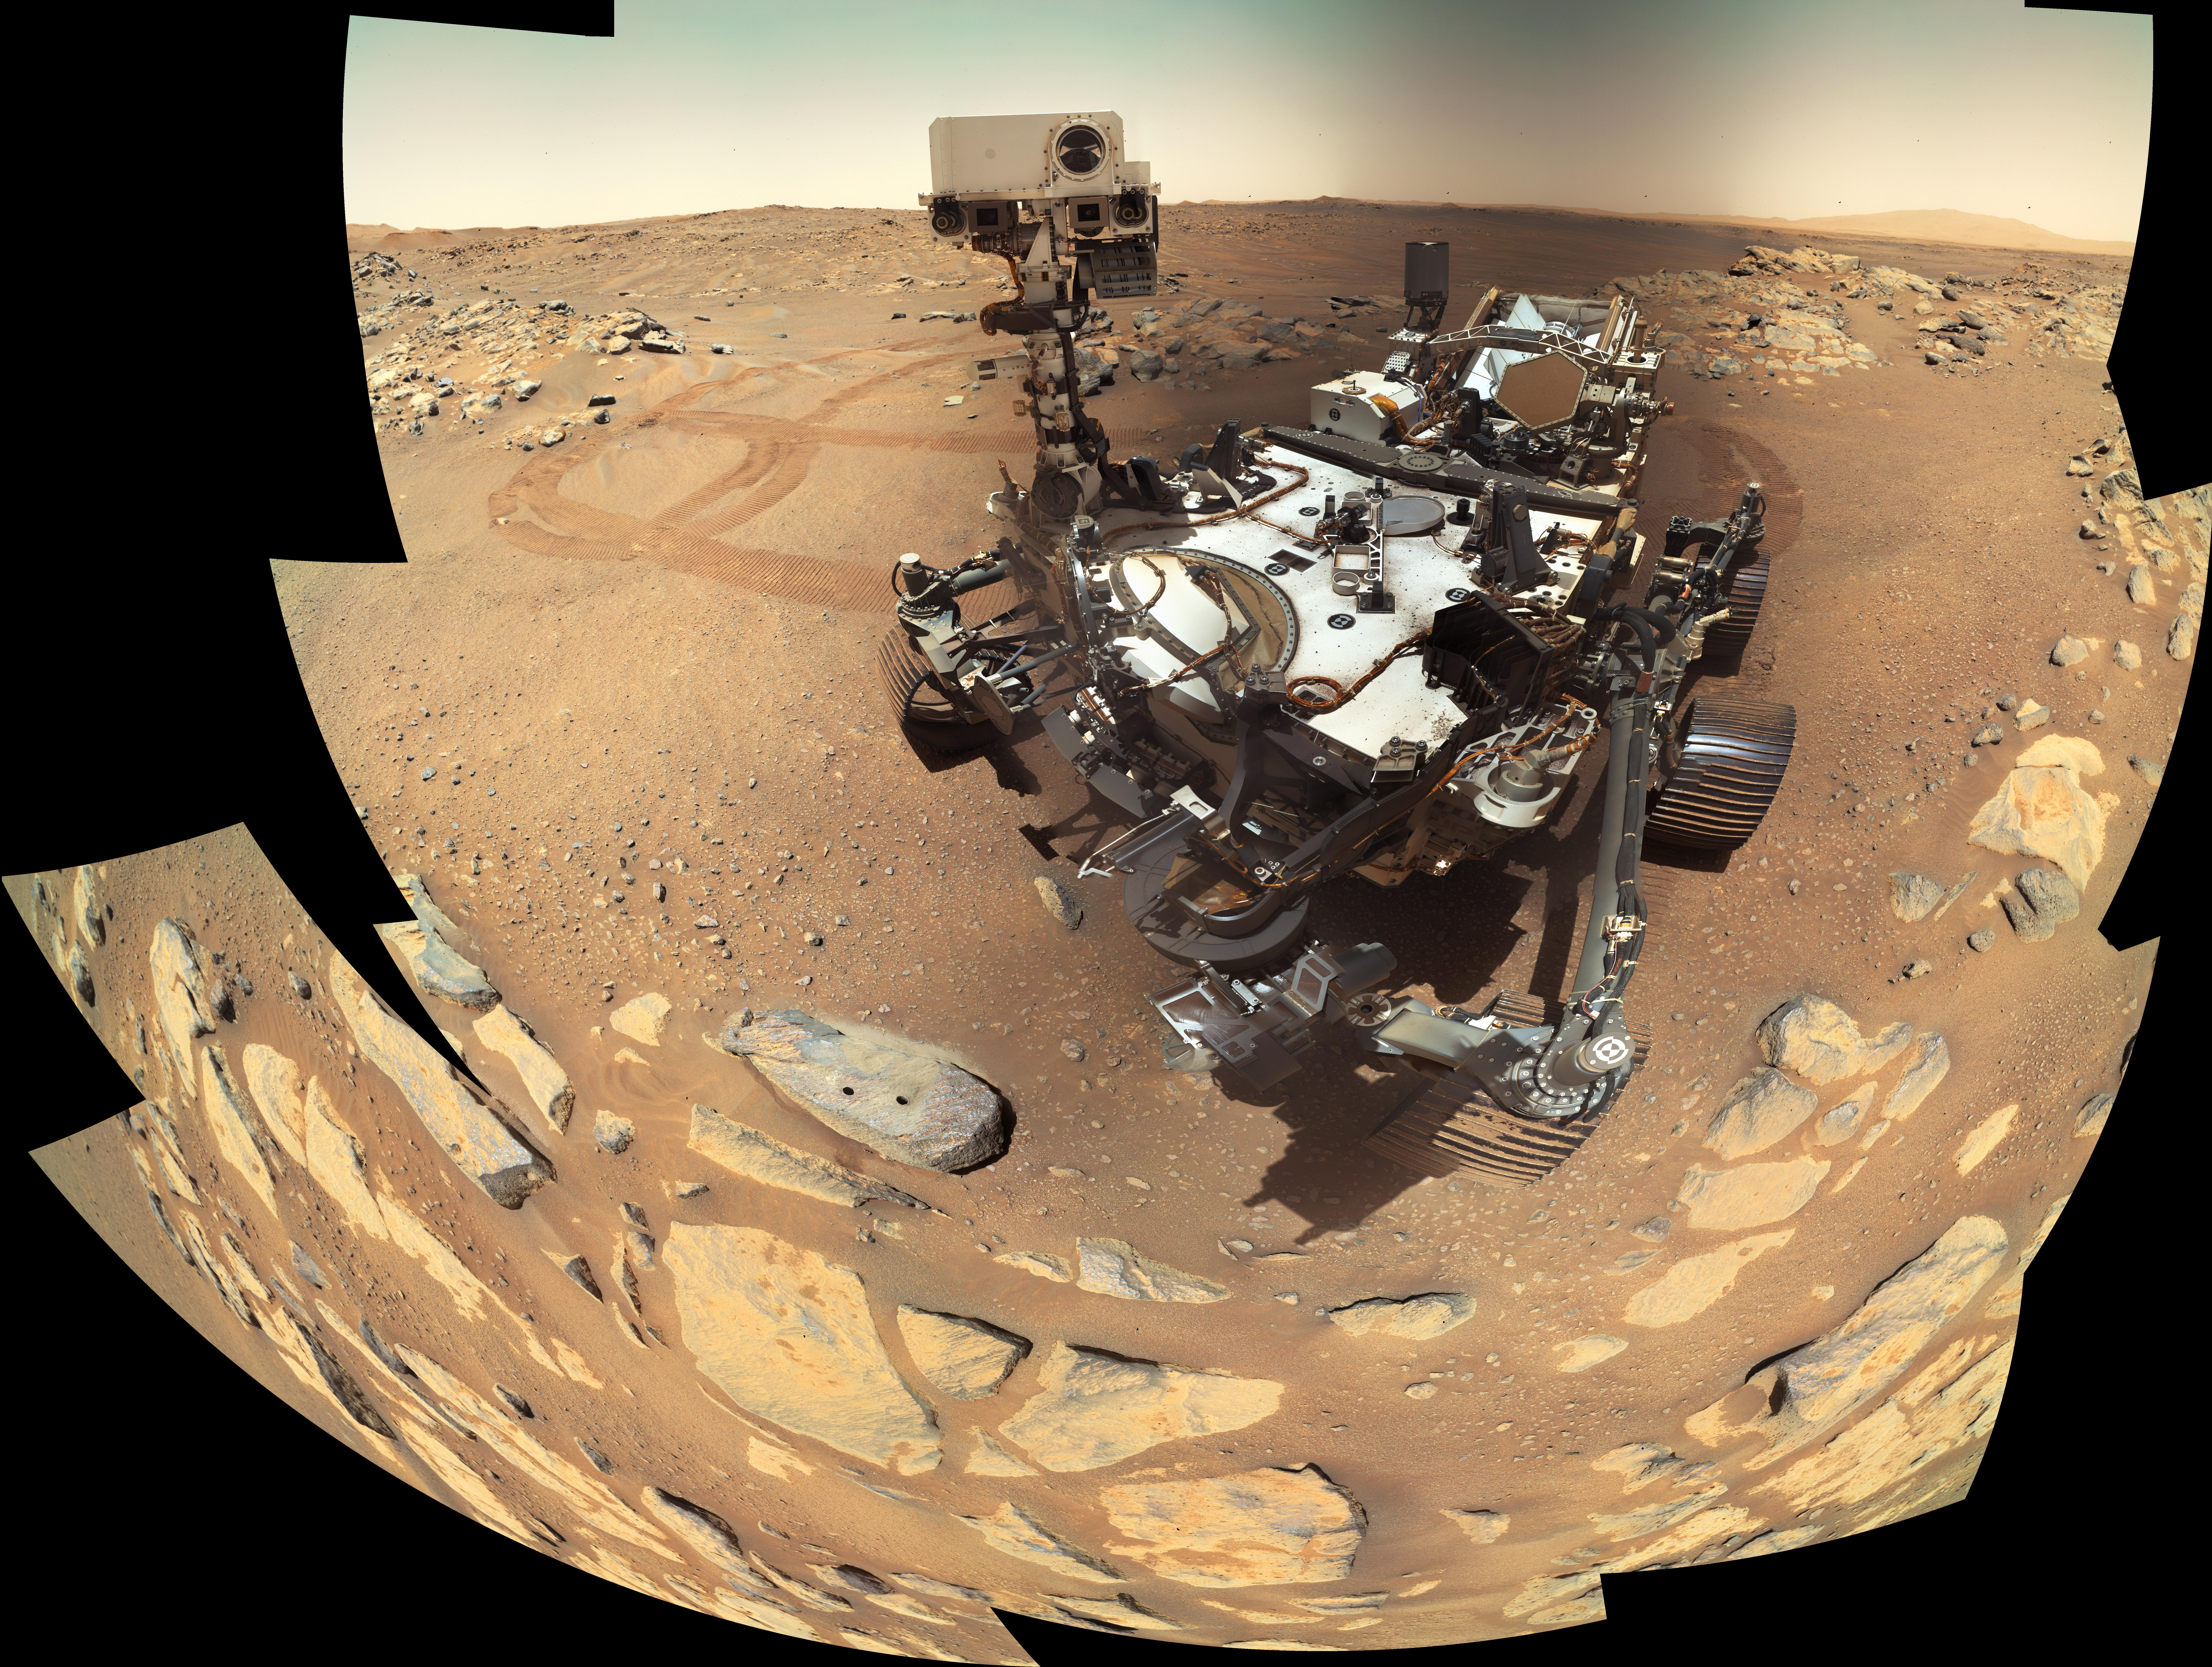 Perseverance's Latest Selfie from the Red Planet